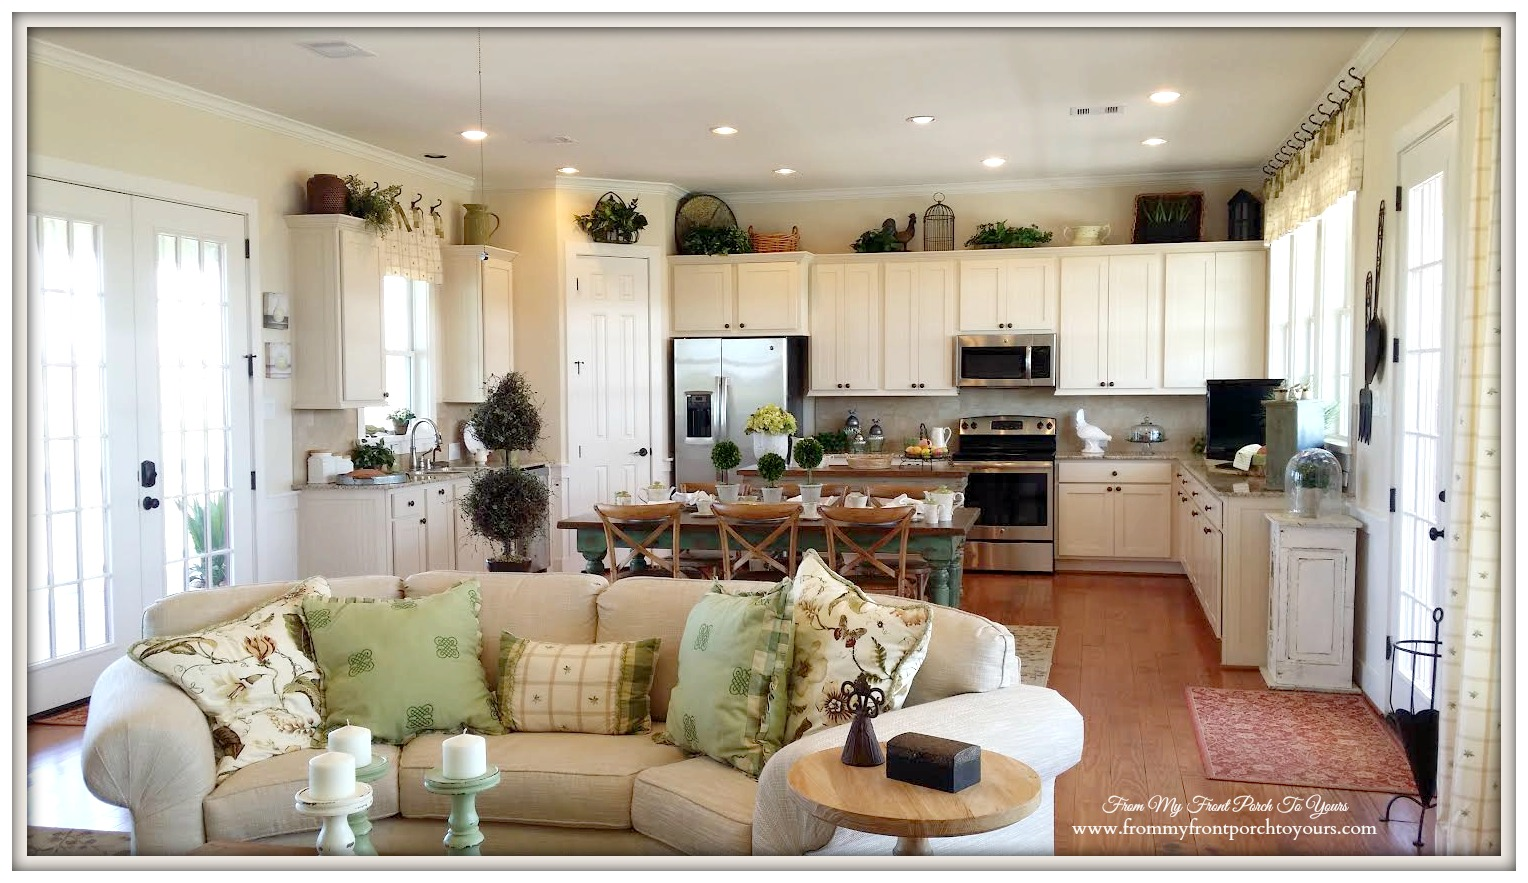 Farmhouse Kitchen-Farmhouse Model Home-Trendmaker Homes- From My Front Porch To Yours